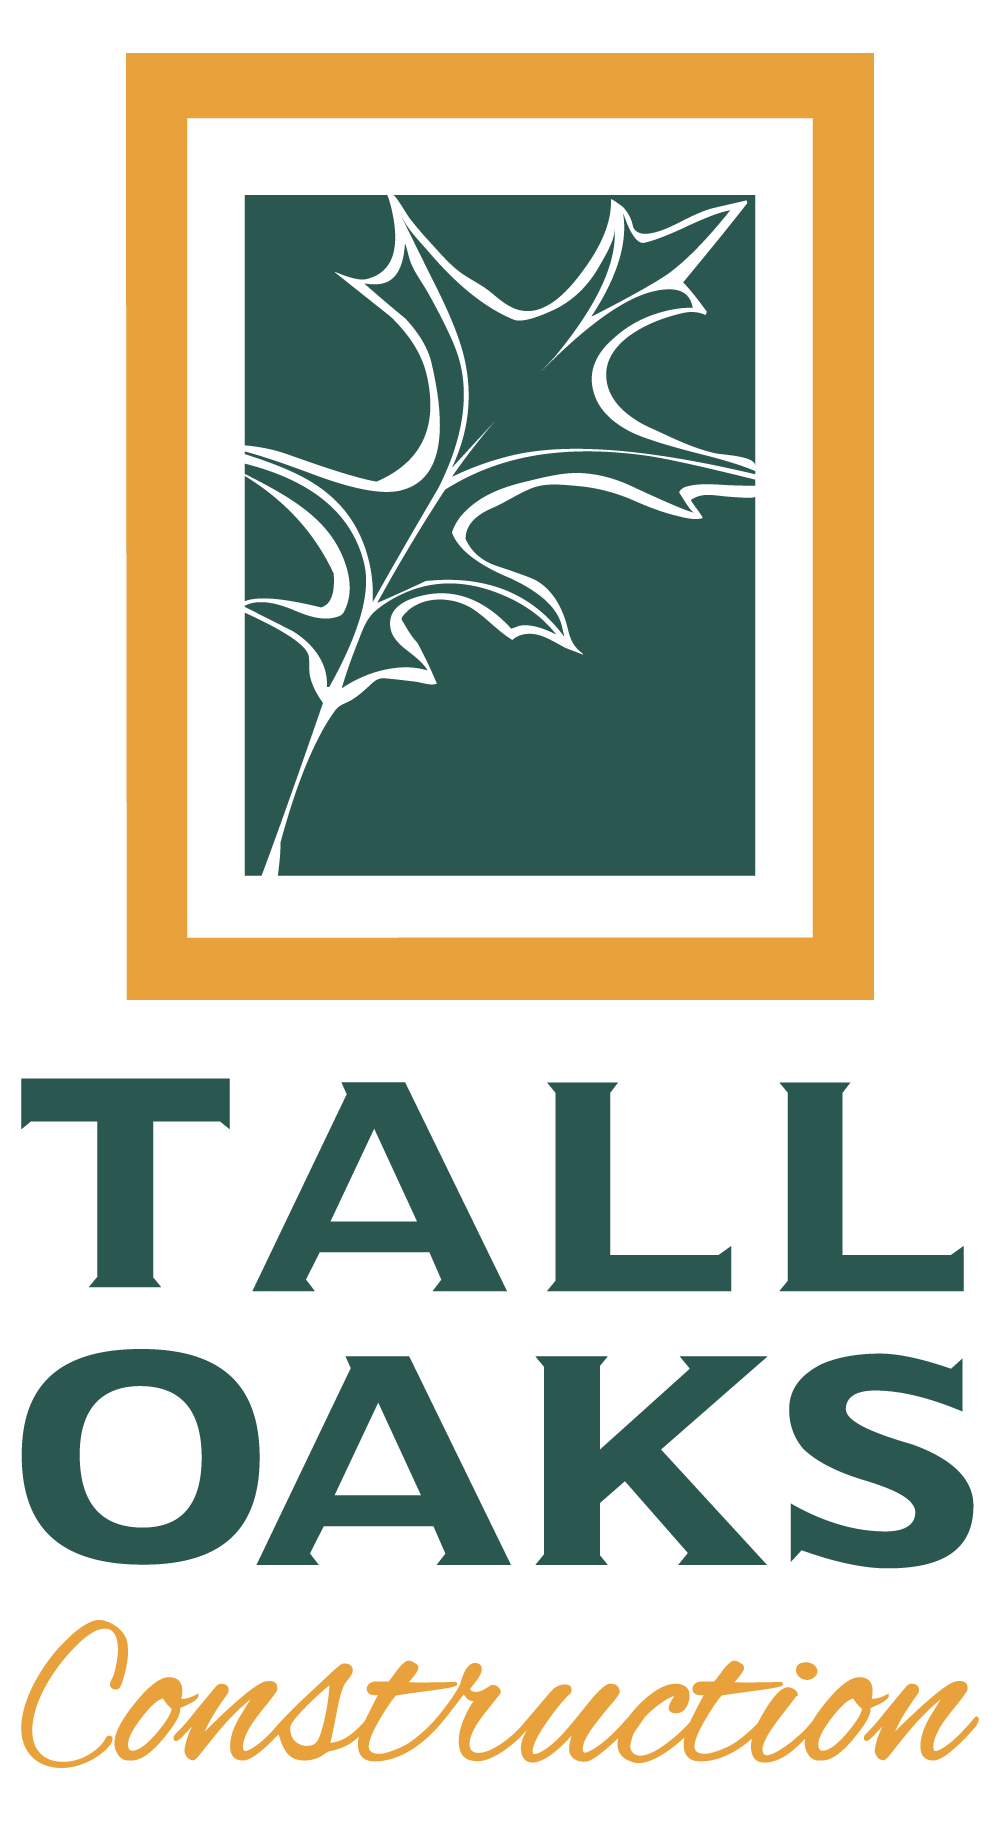 Tall Oaks Construction